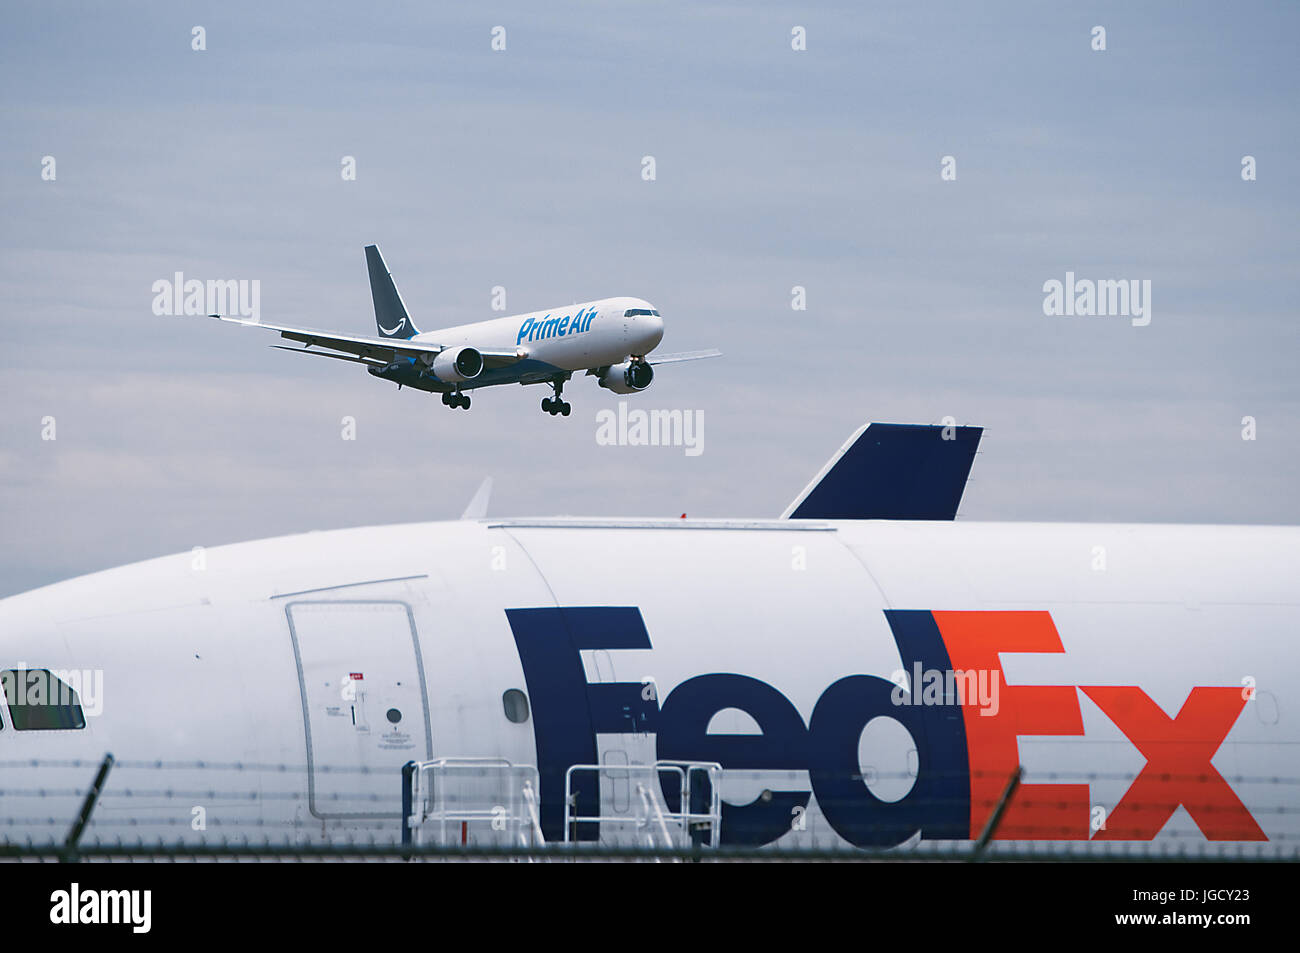 Air Cargo Stock Photos & Air Cargo Stock Images - Alamy